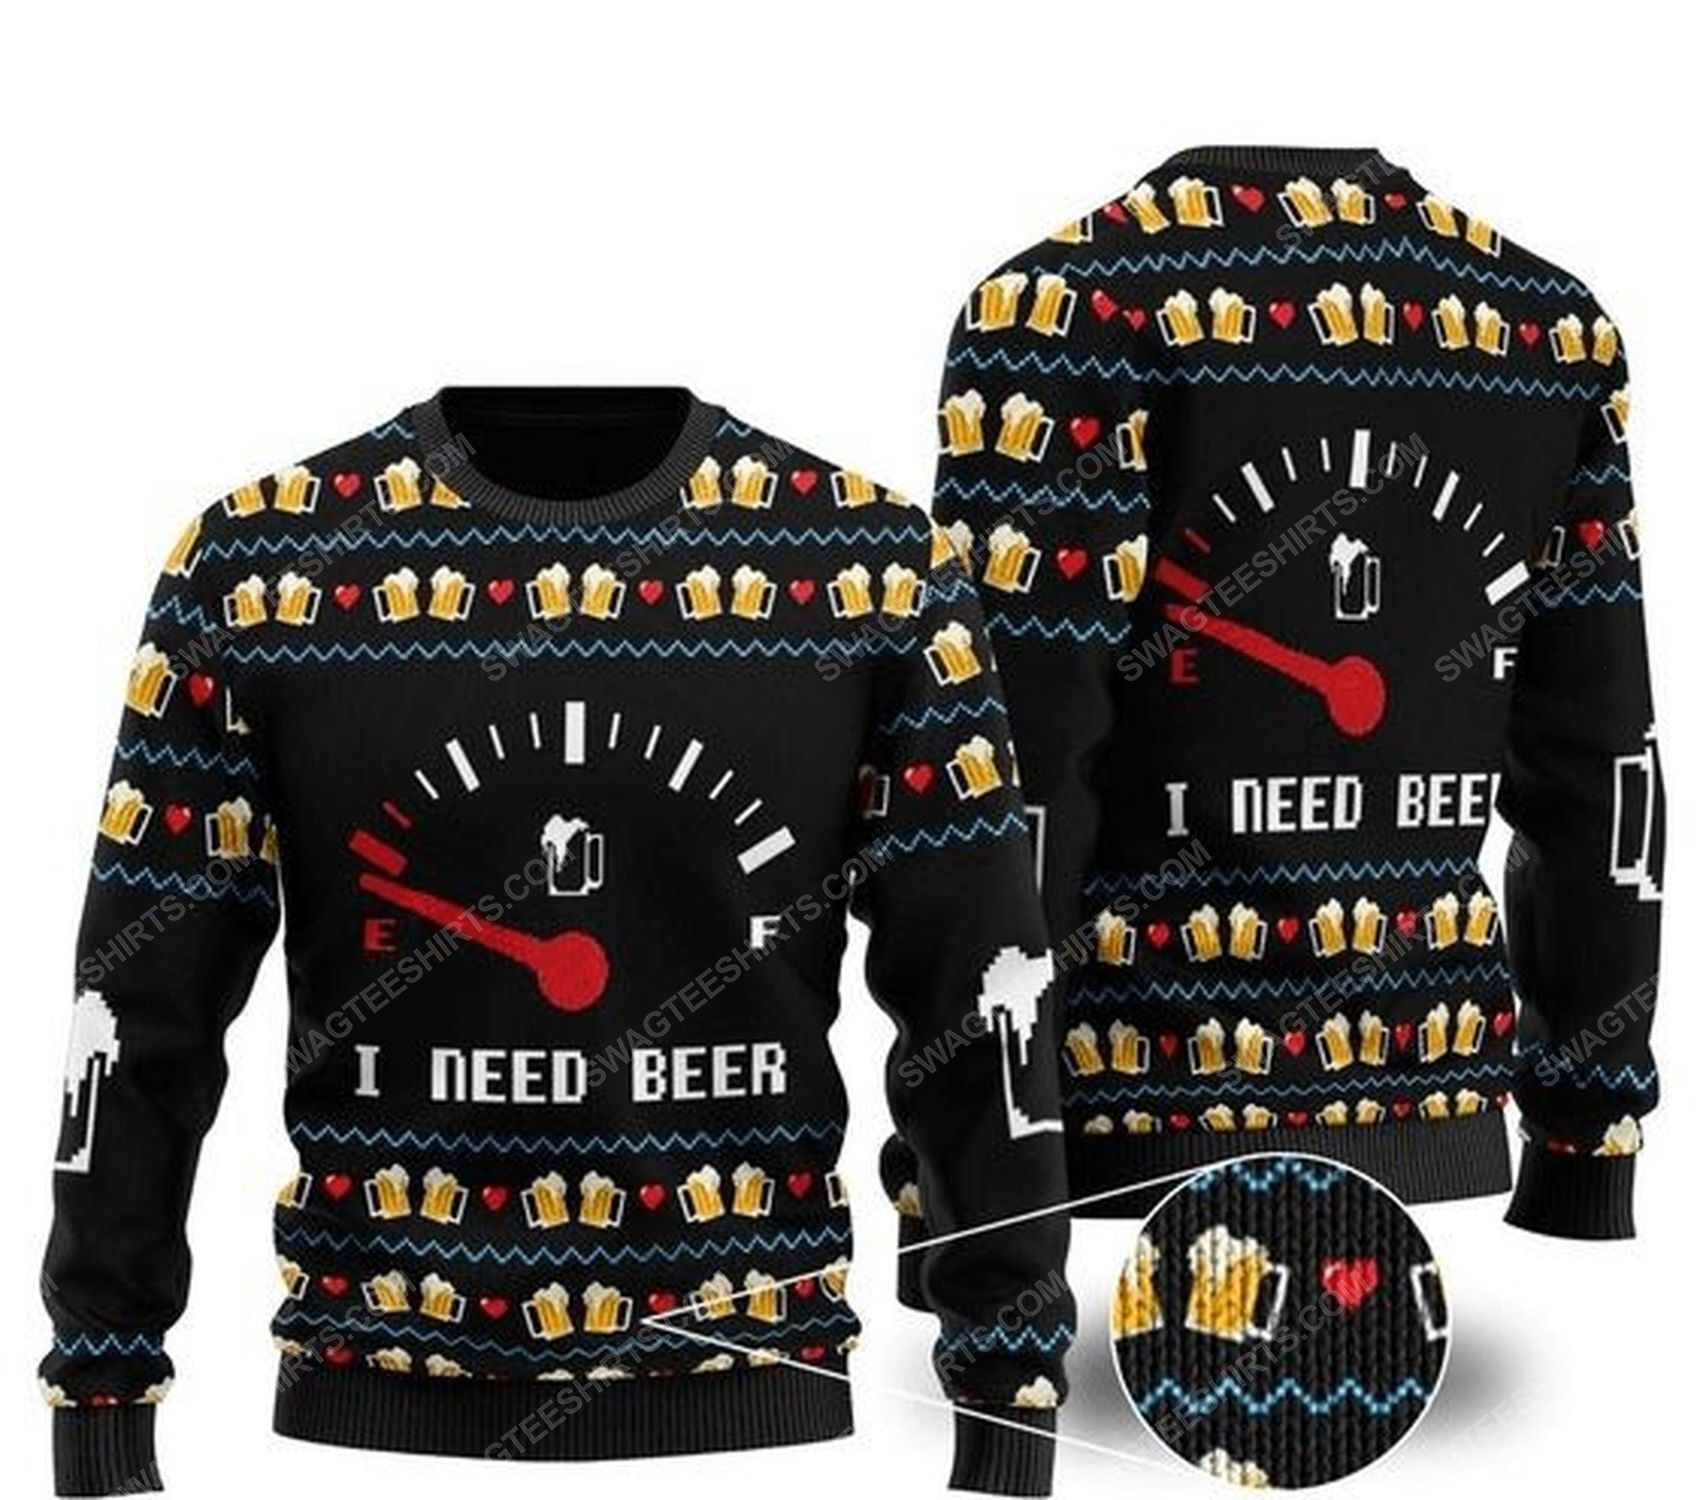 I need beer all over print ugly christmas sweater 1 - Copy (2)